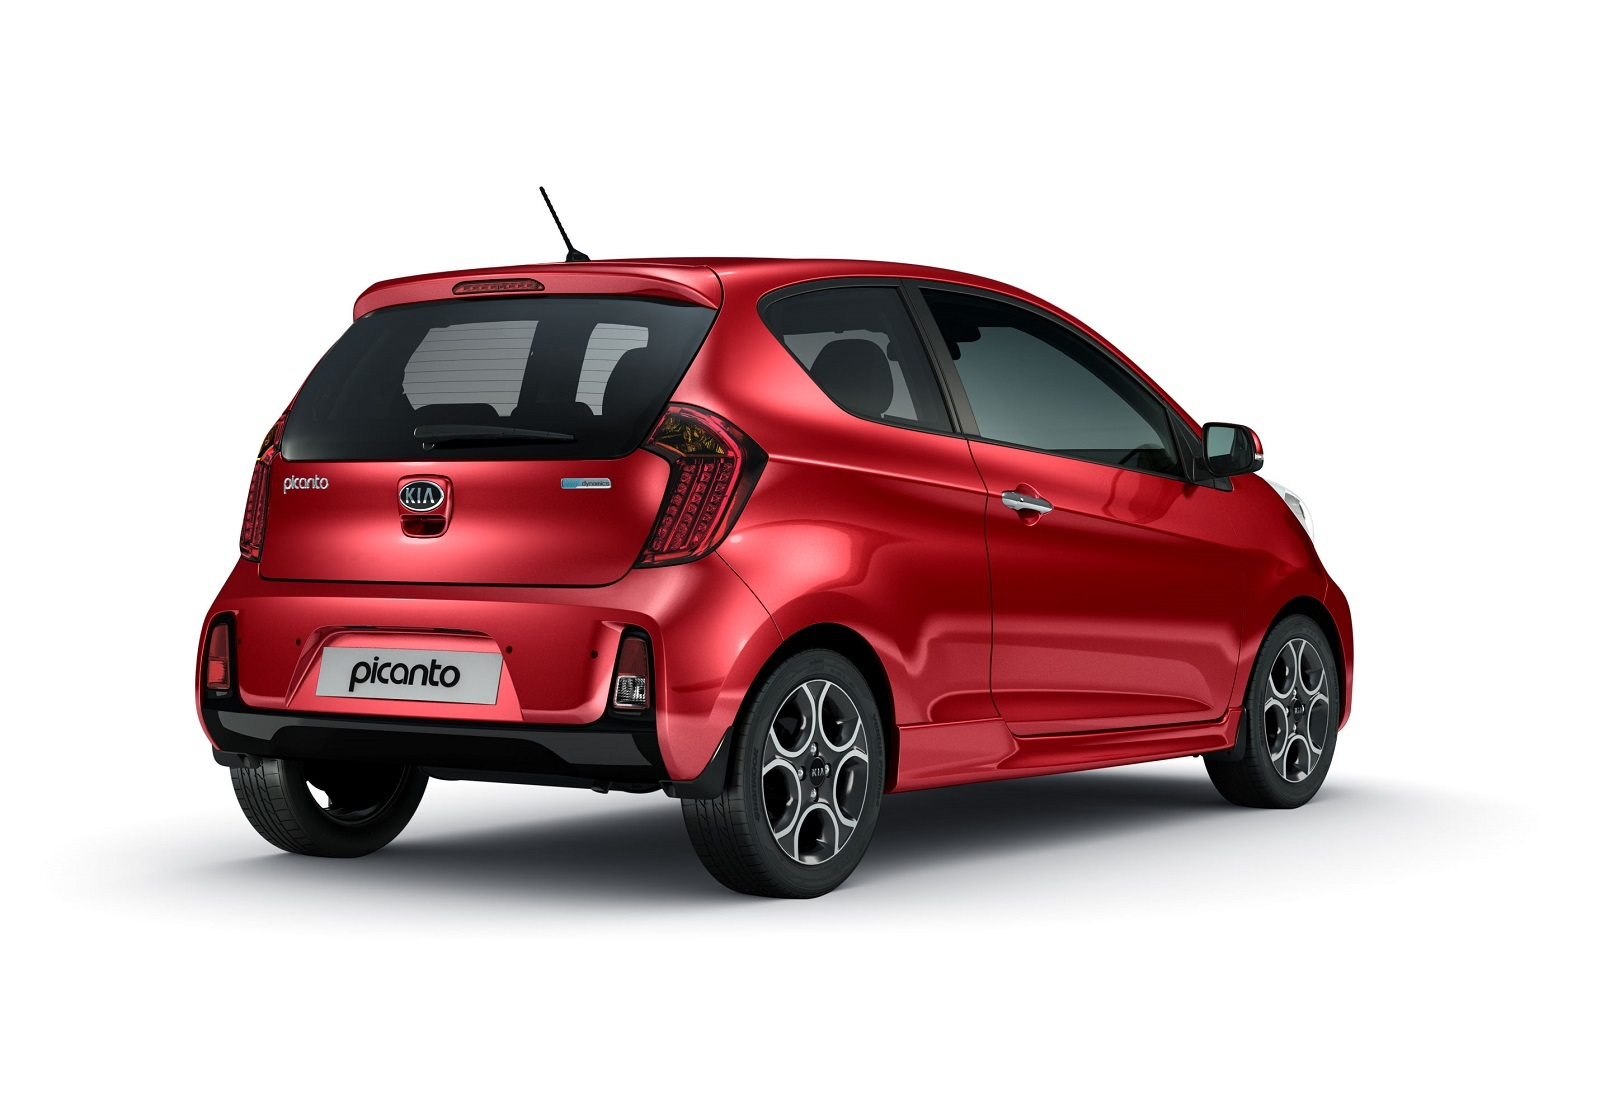 kia picanto facelift to debut in geneva no turbo for europe the korean car blog. Black Bedroom Furniture Sets. Home Design Ideas